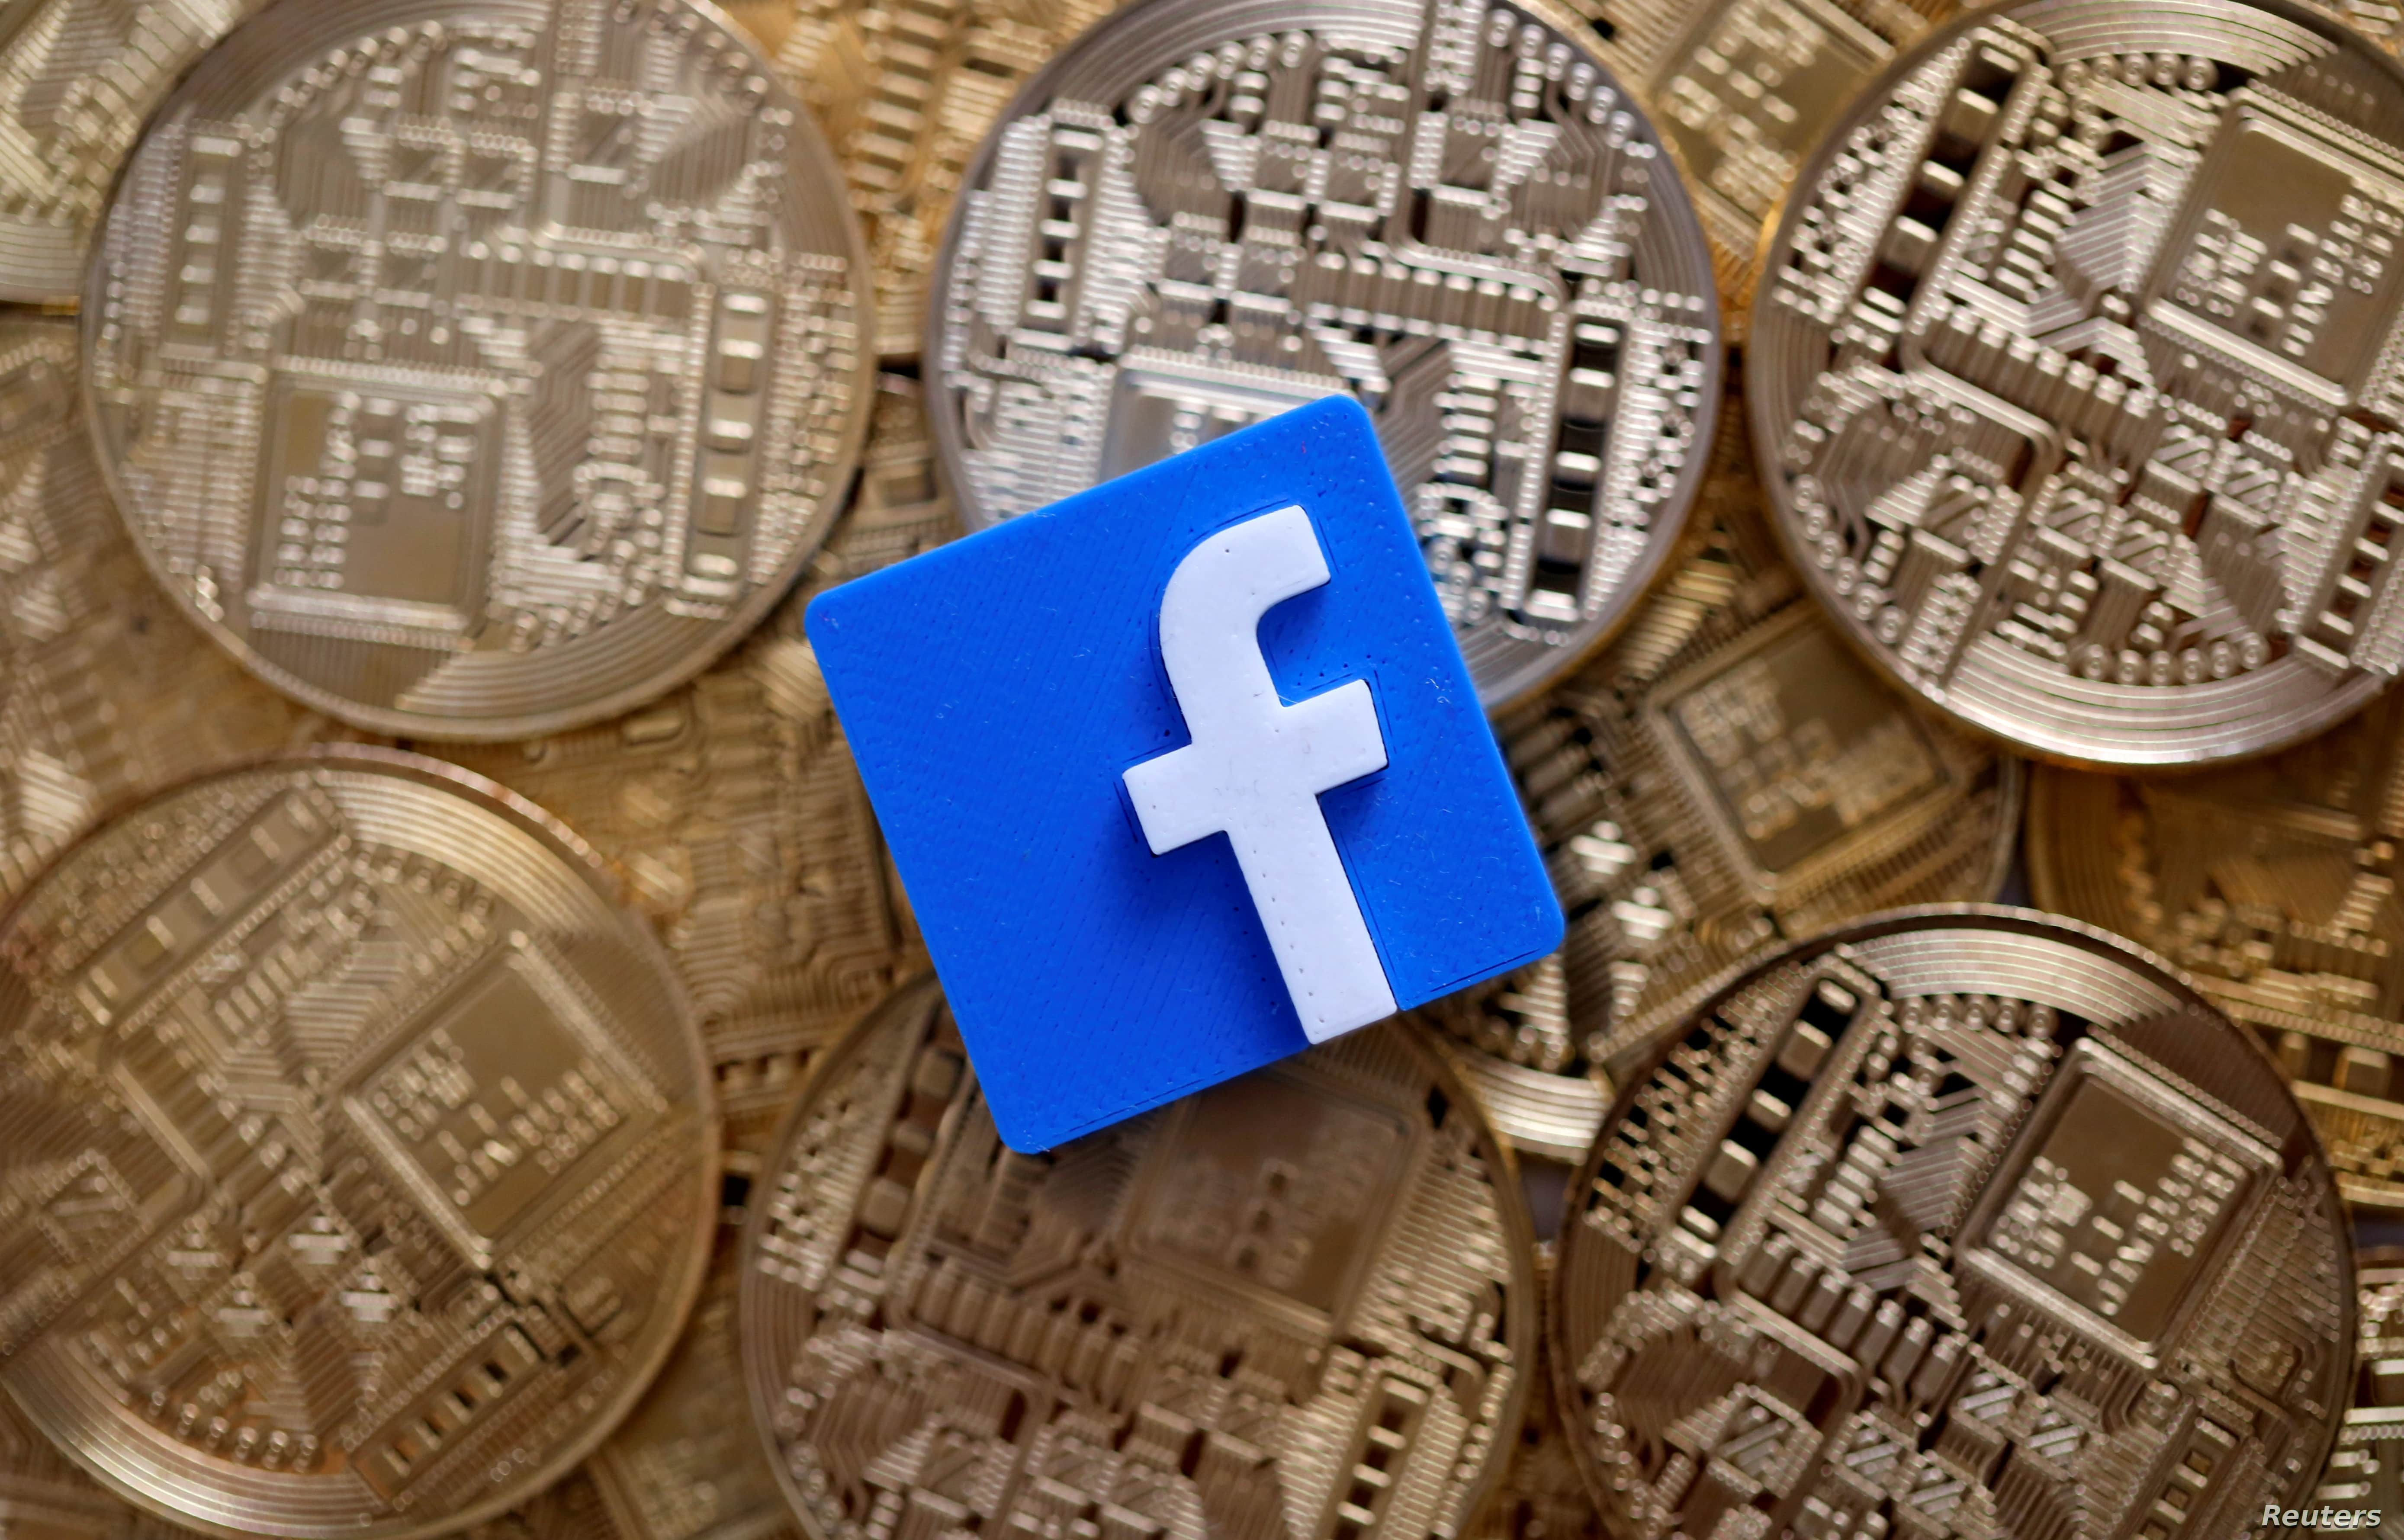 Facebook's 'Cryptocurrency': All You Need to Know about Libra